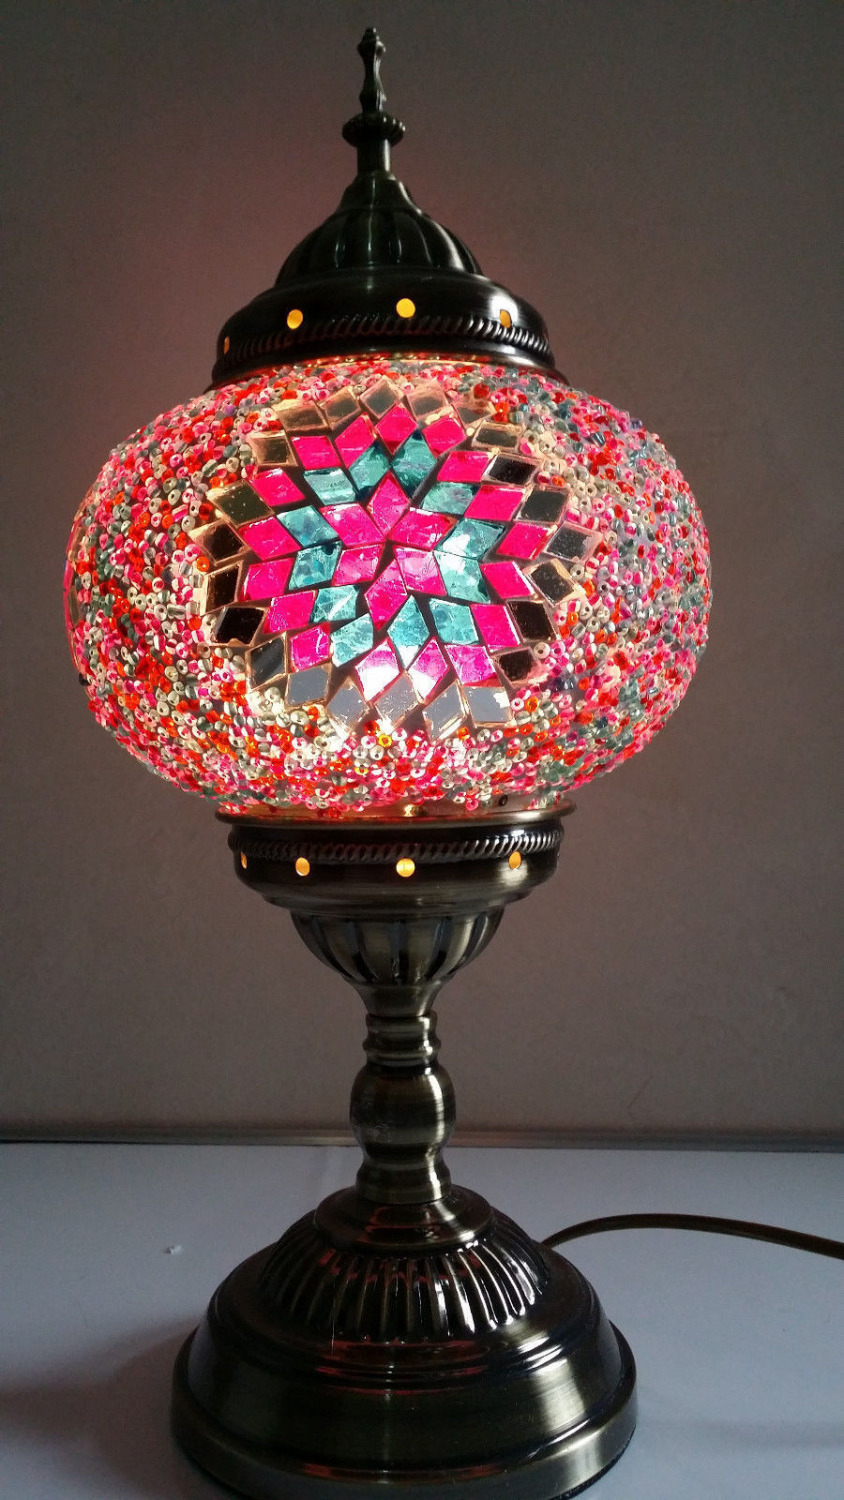 Turkish moroccan handmade mosaic red stained glass table lamp hand turkish moroccan handmade mosaic red stained glass table lamp hand craft desk lamp new in table lamps from lights lighting on aliexpress alibaba mozeypictures Image collections